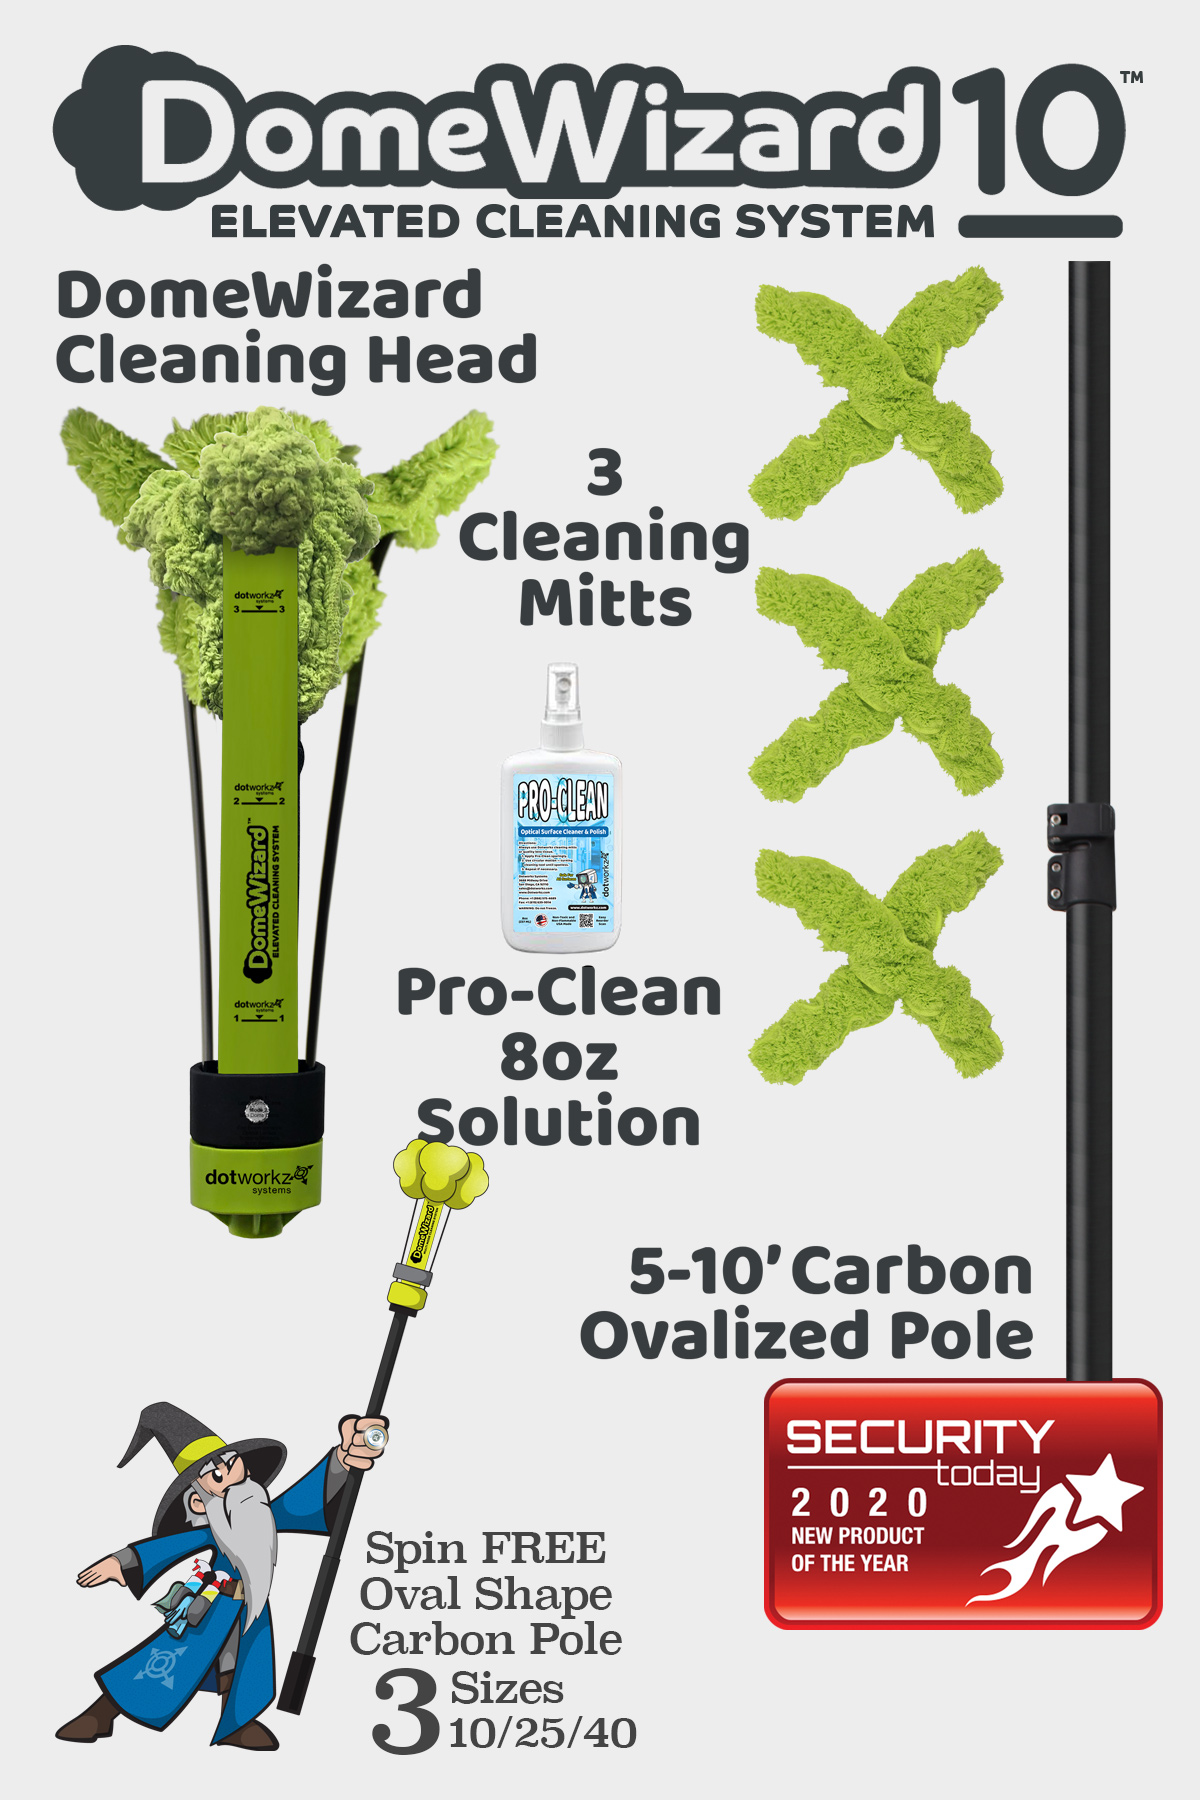 DomeWizard 10 - Elevated Cleaning System with Multiple Cleaning Modes from Dotworkz 2020